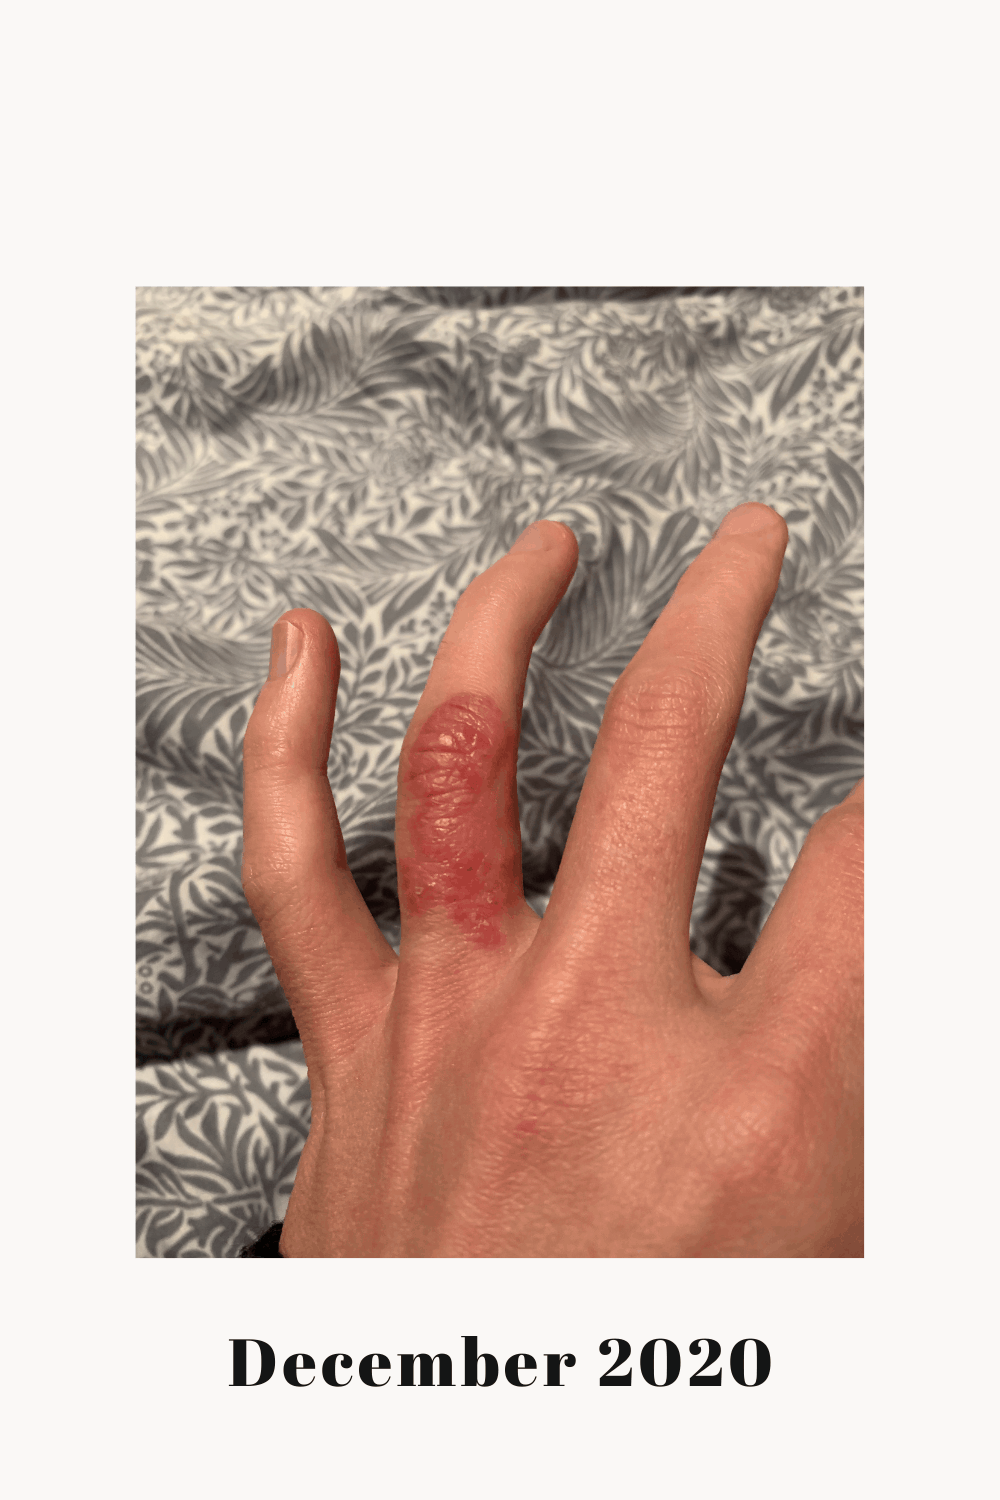 My left ring finger with a Dyshidrotic Eczema flare.